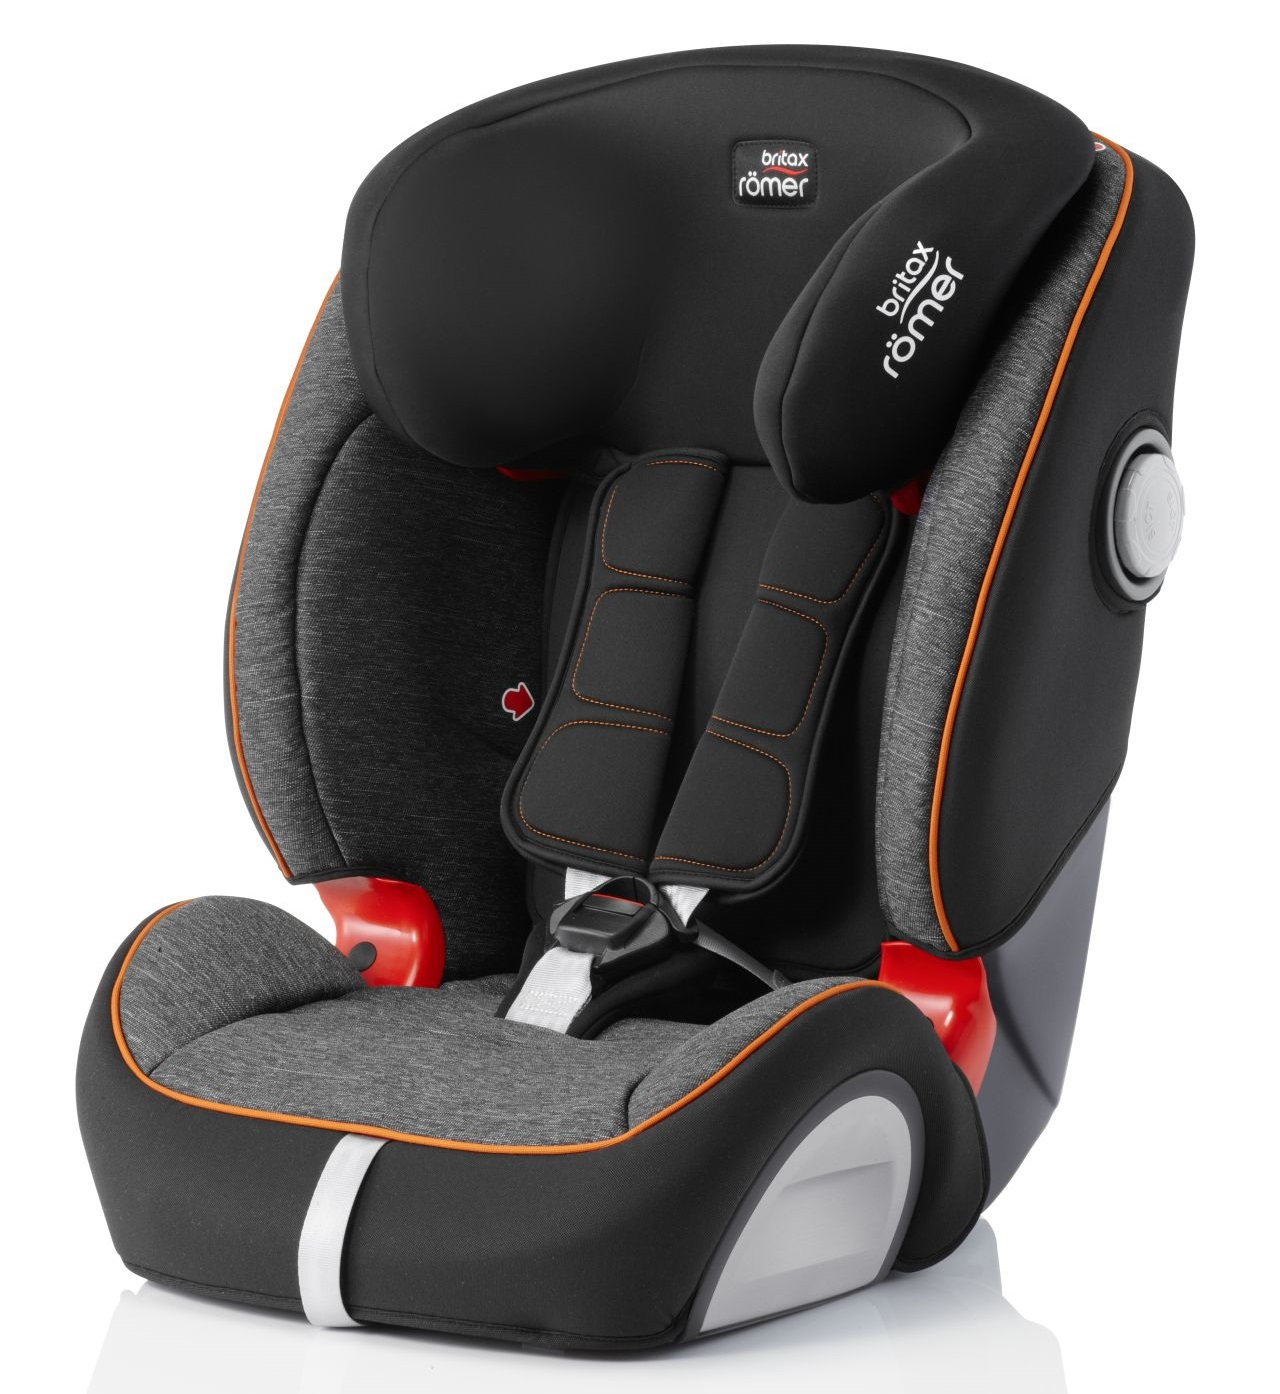 britax r mer evolva 1 2 3 sl sict isofix buy at kidsroom. Black Bedroom Furniture Sets. Home Design Ideas